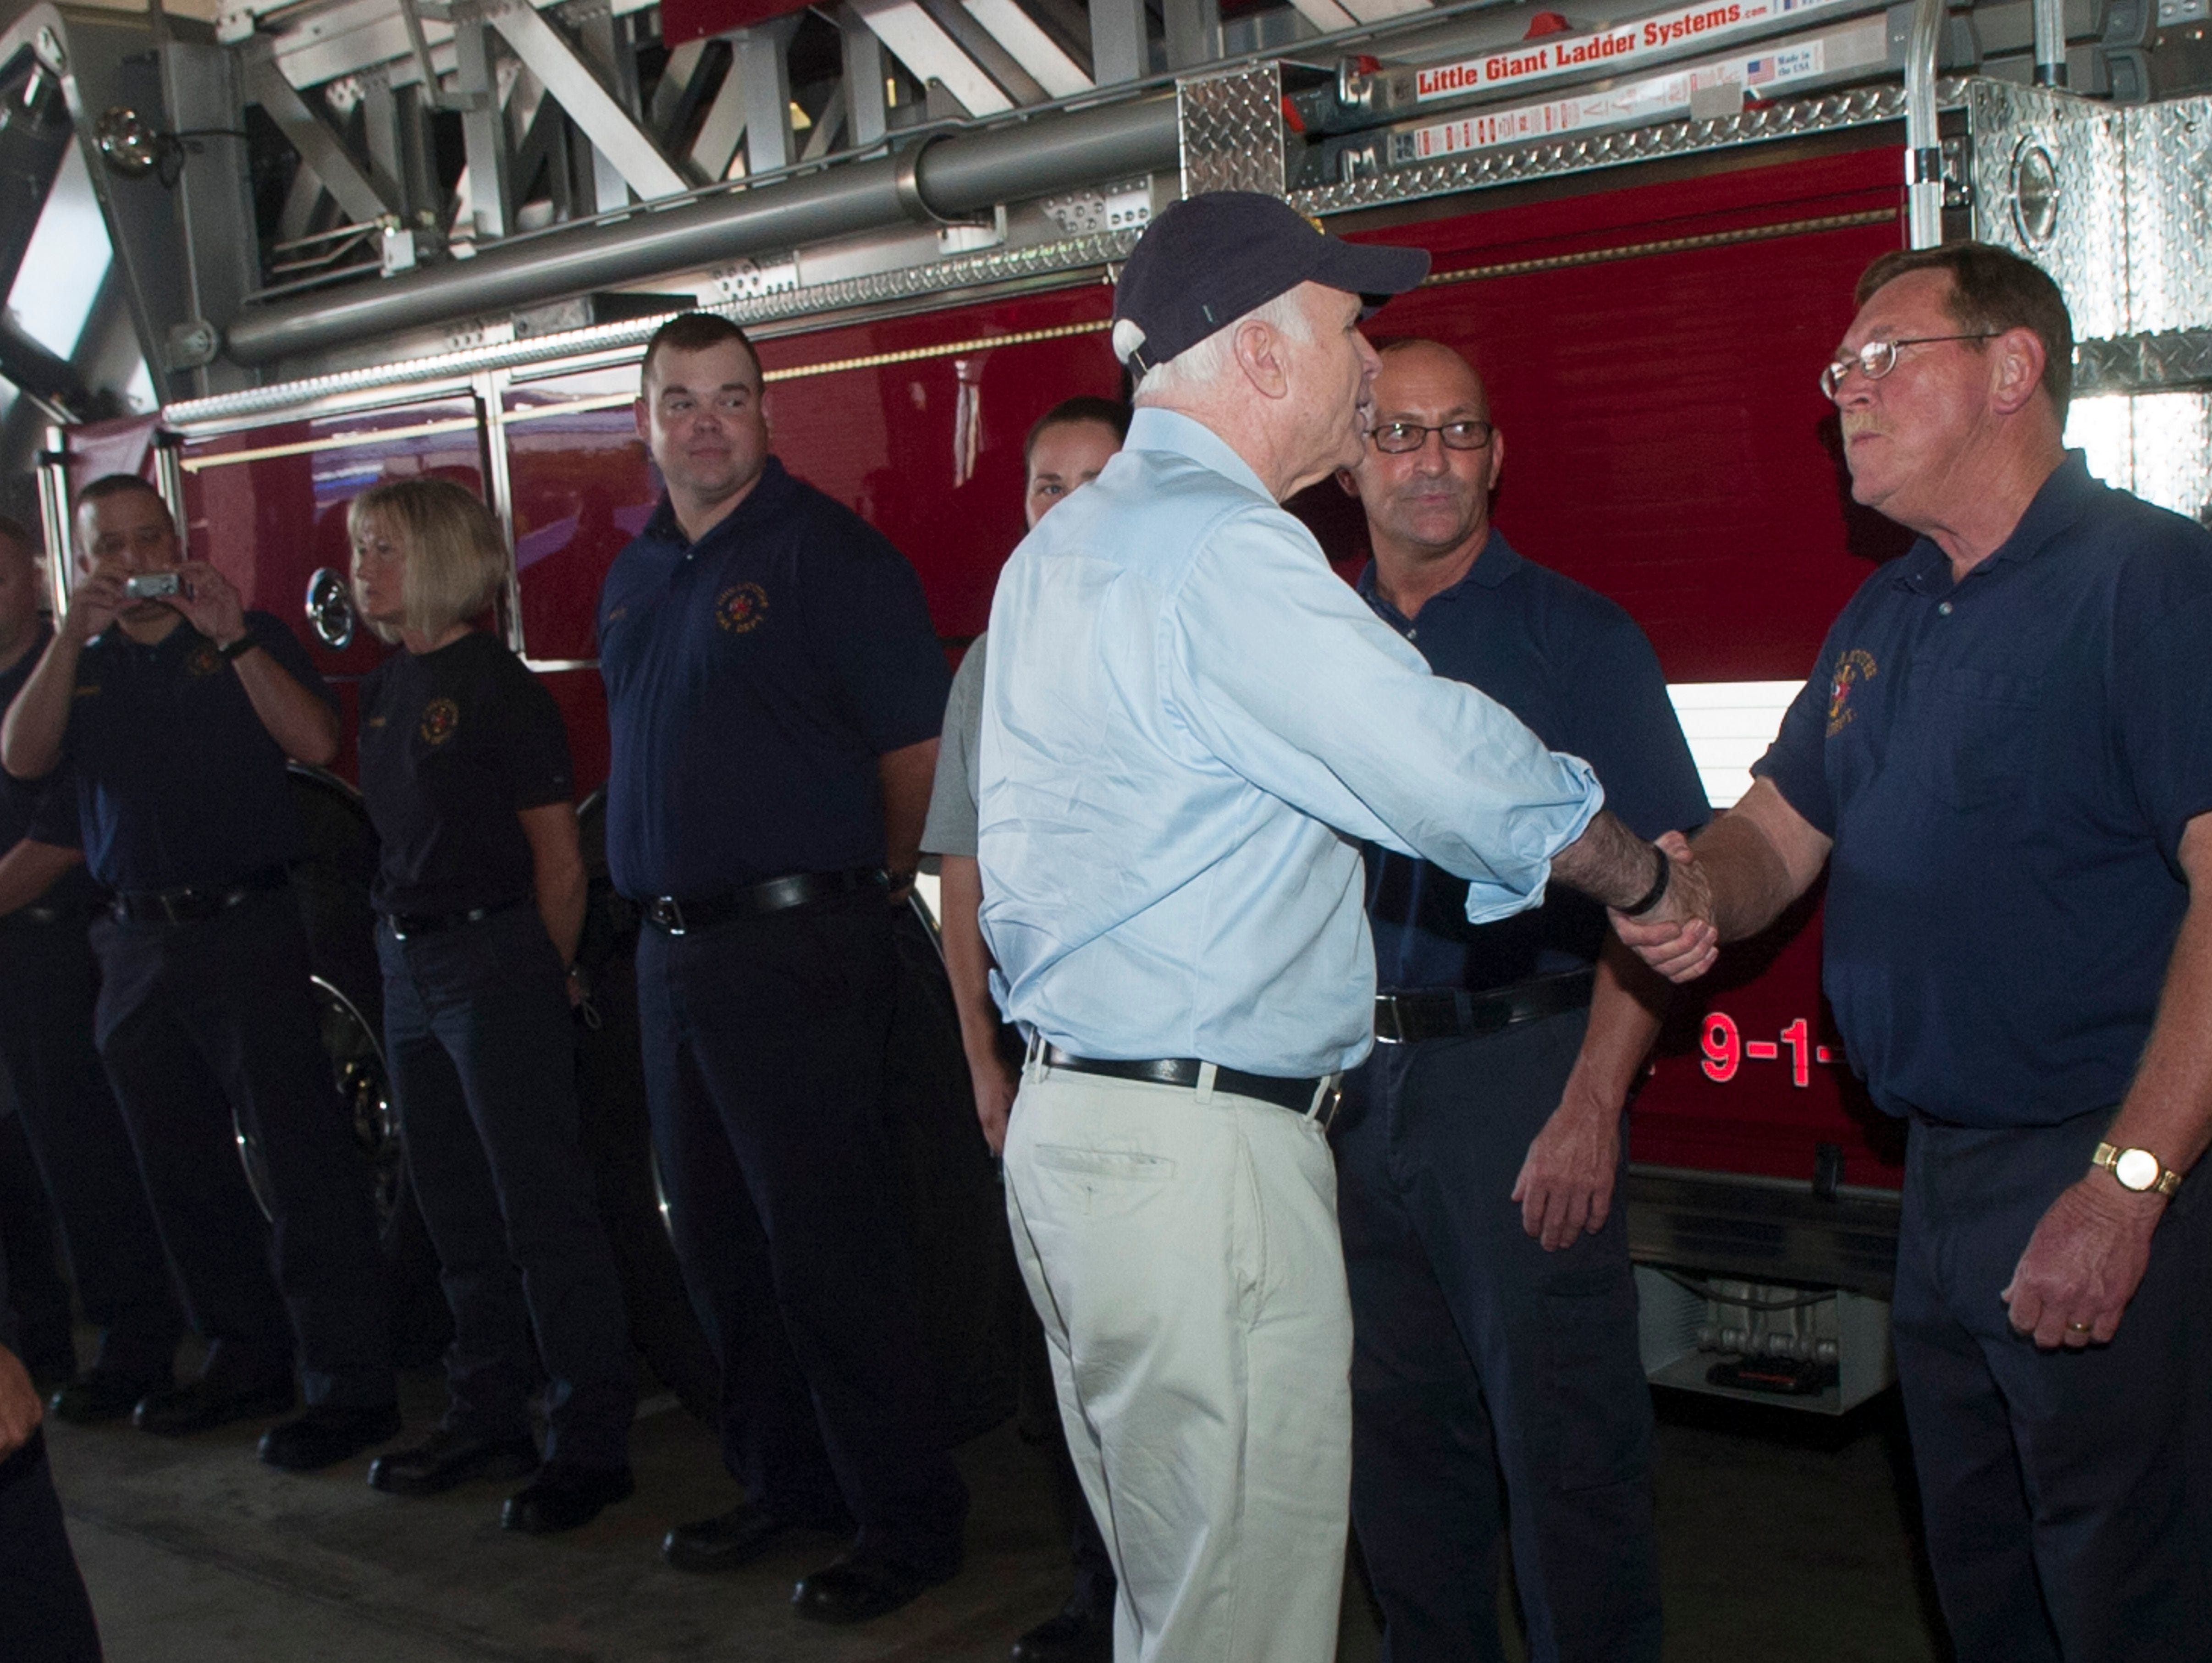 John McCain shakes hands as he walks through the main fire station of the Chillicothe Fire Department on August 6, 2008.